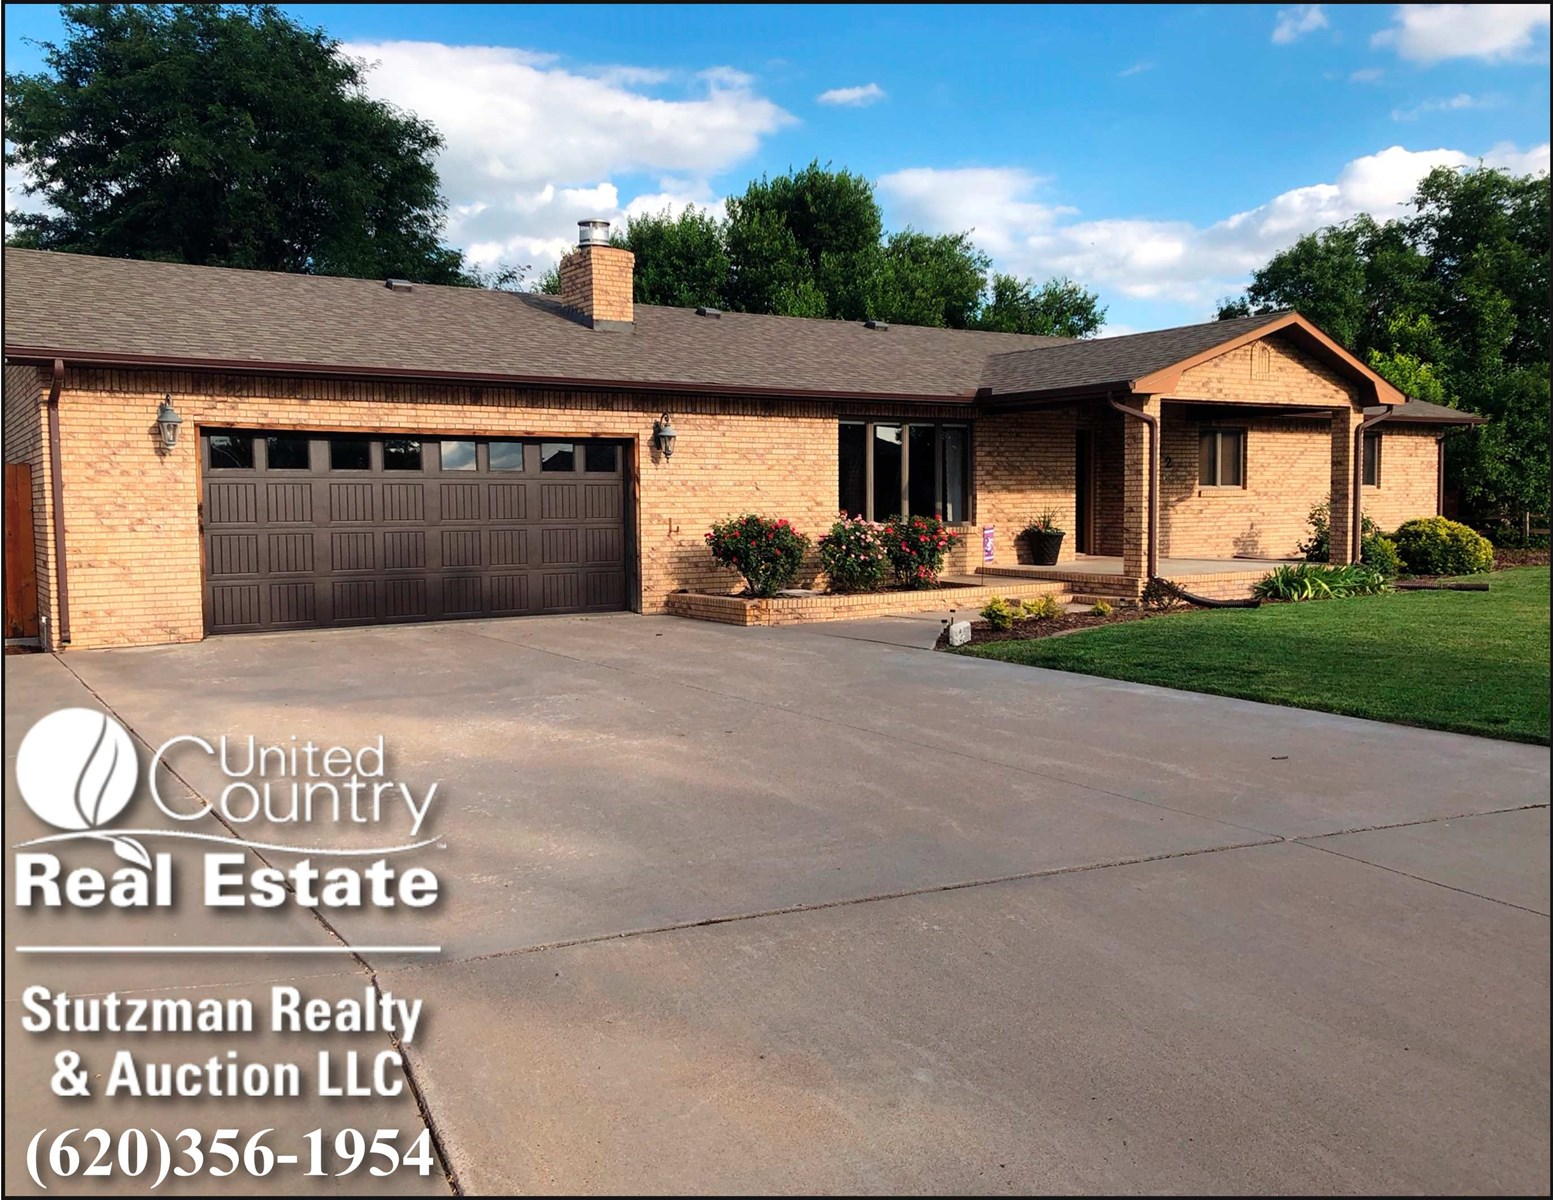 LARGE BRICK HOME FOR SALE IN ULYSSES, KS